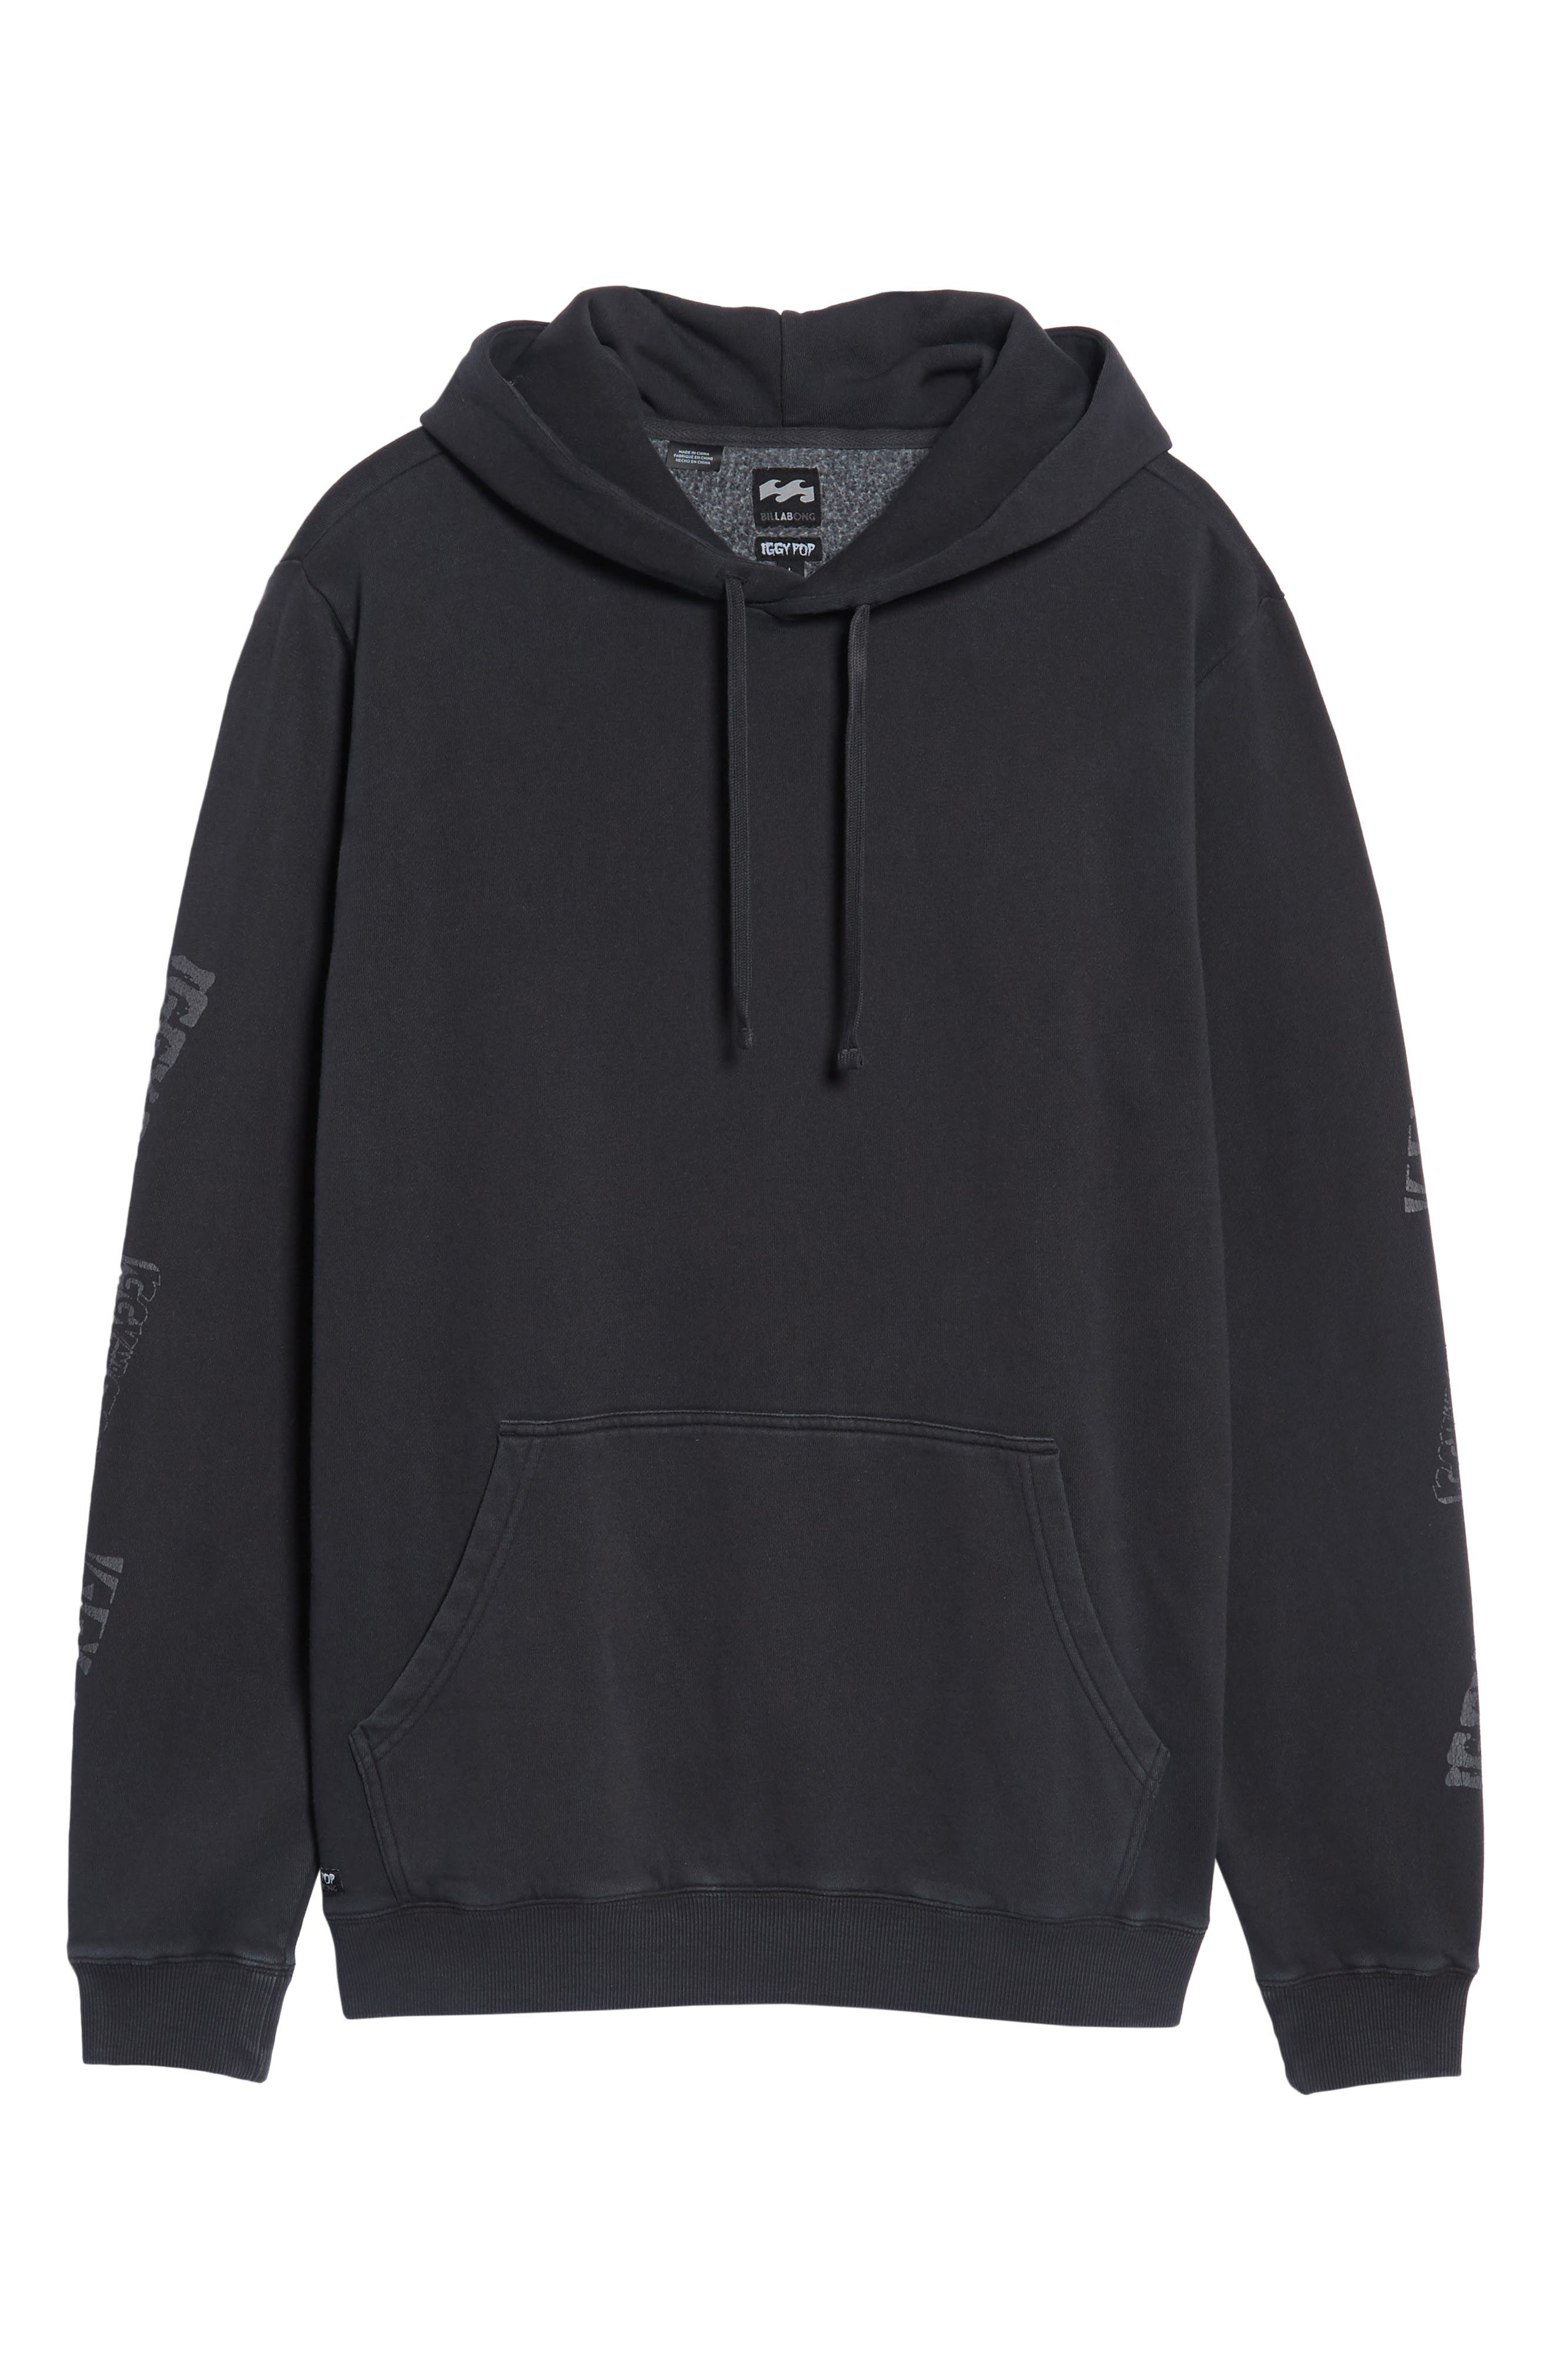 x Iggy Pop LAB Hoodie,                             Alternate thumbnail 5, color,                             Black